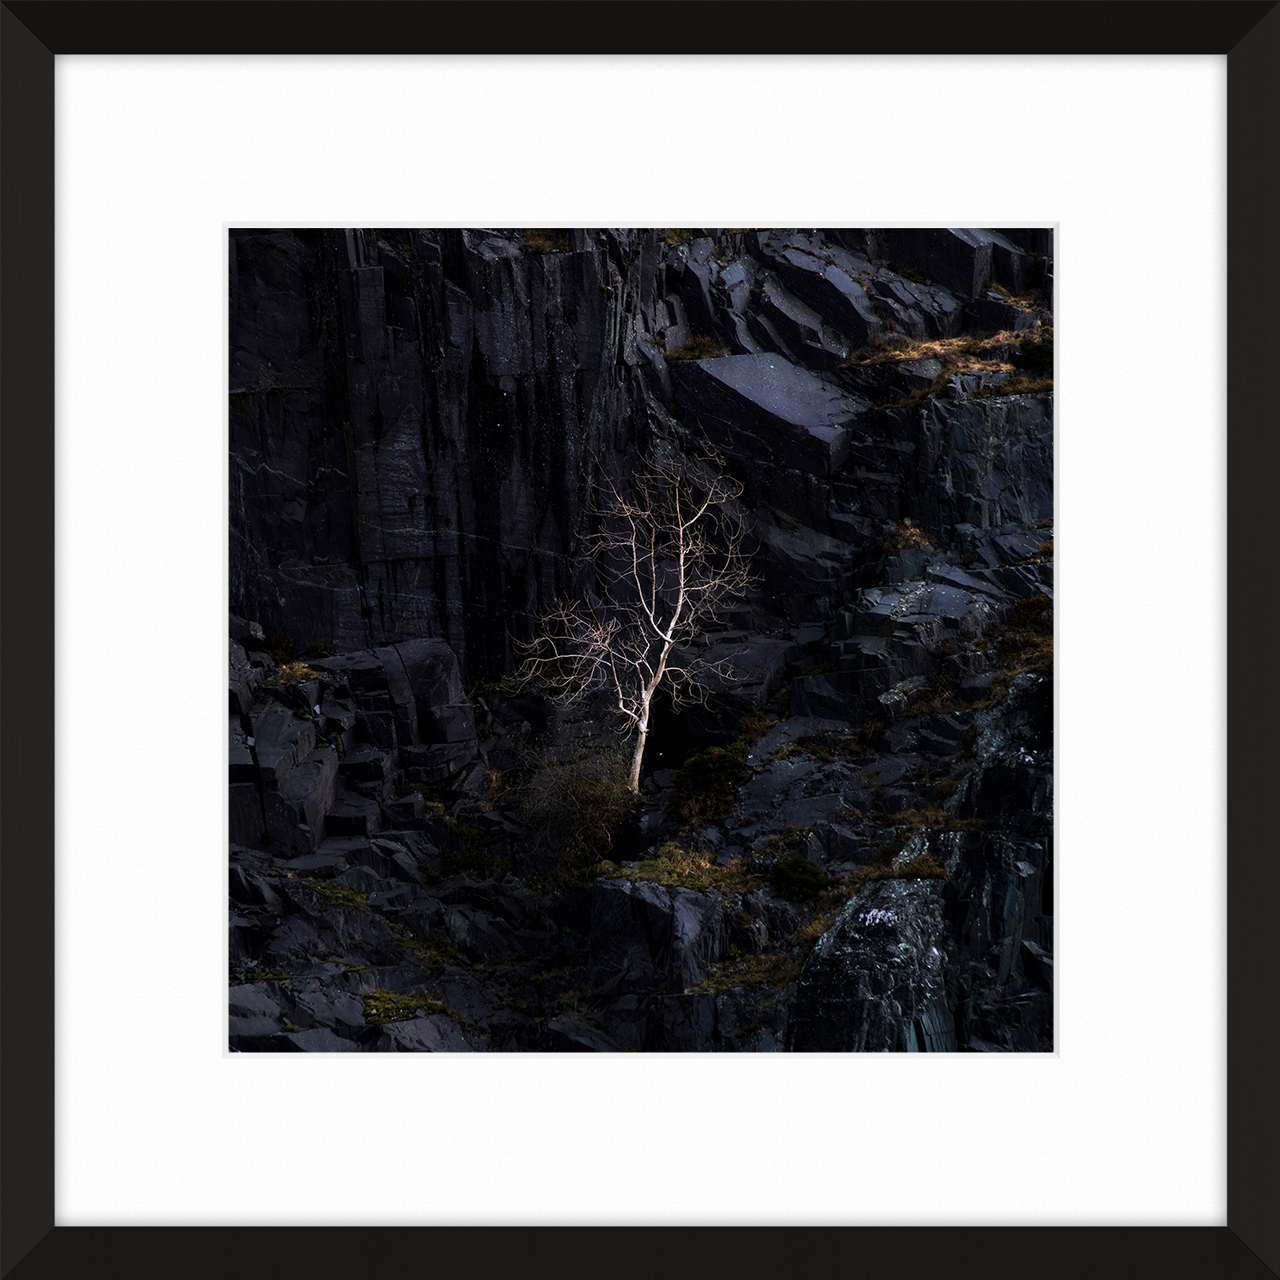 Little Dinorwic Tree - One of the many trees scattered across this giant slate quarry and mountainscape of Dinorwic, Llanberis, Wales. This being the most prominent trees you notice on the walk in to the quarry. The lone silver tree standing above the lake, Dali's Hole.Prints are available from Treacle Gallery in 4 different size options and frame colour options to match your interior perfectly. Bespoke sizes and framing options available contact us for more information.